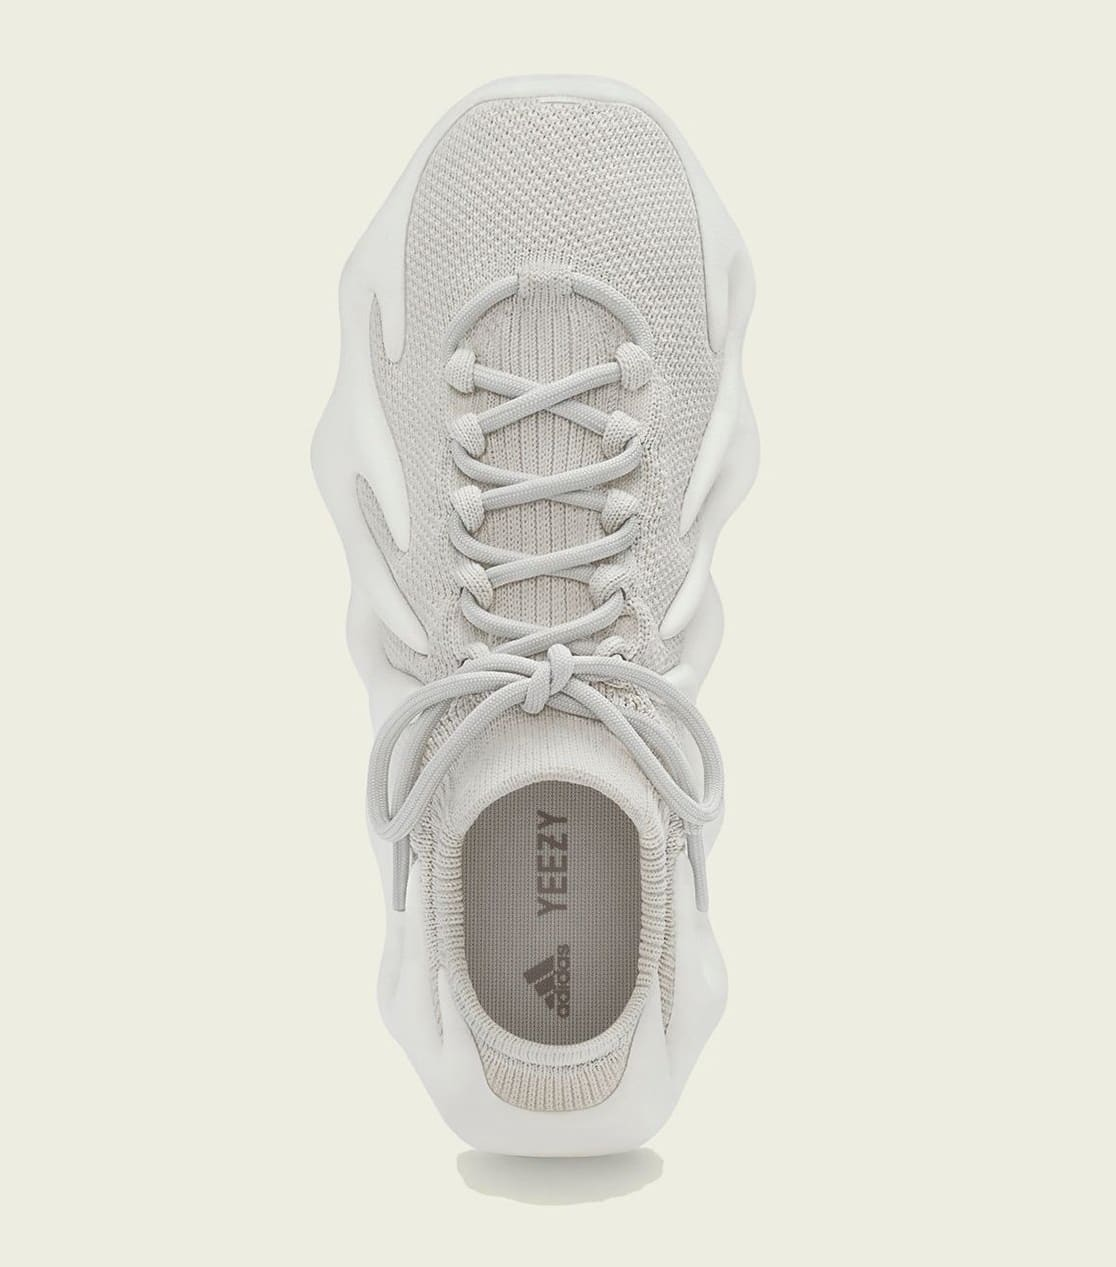 Adidas Yeezy 450 H68038 Top